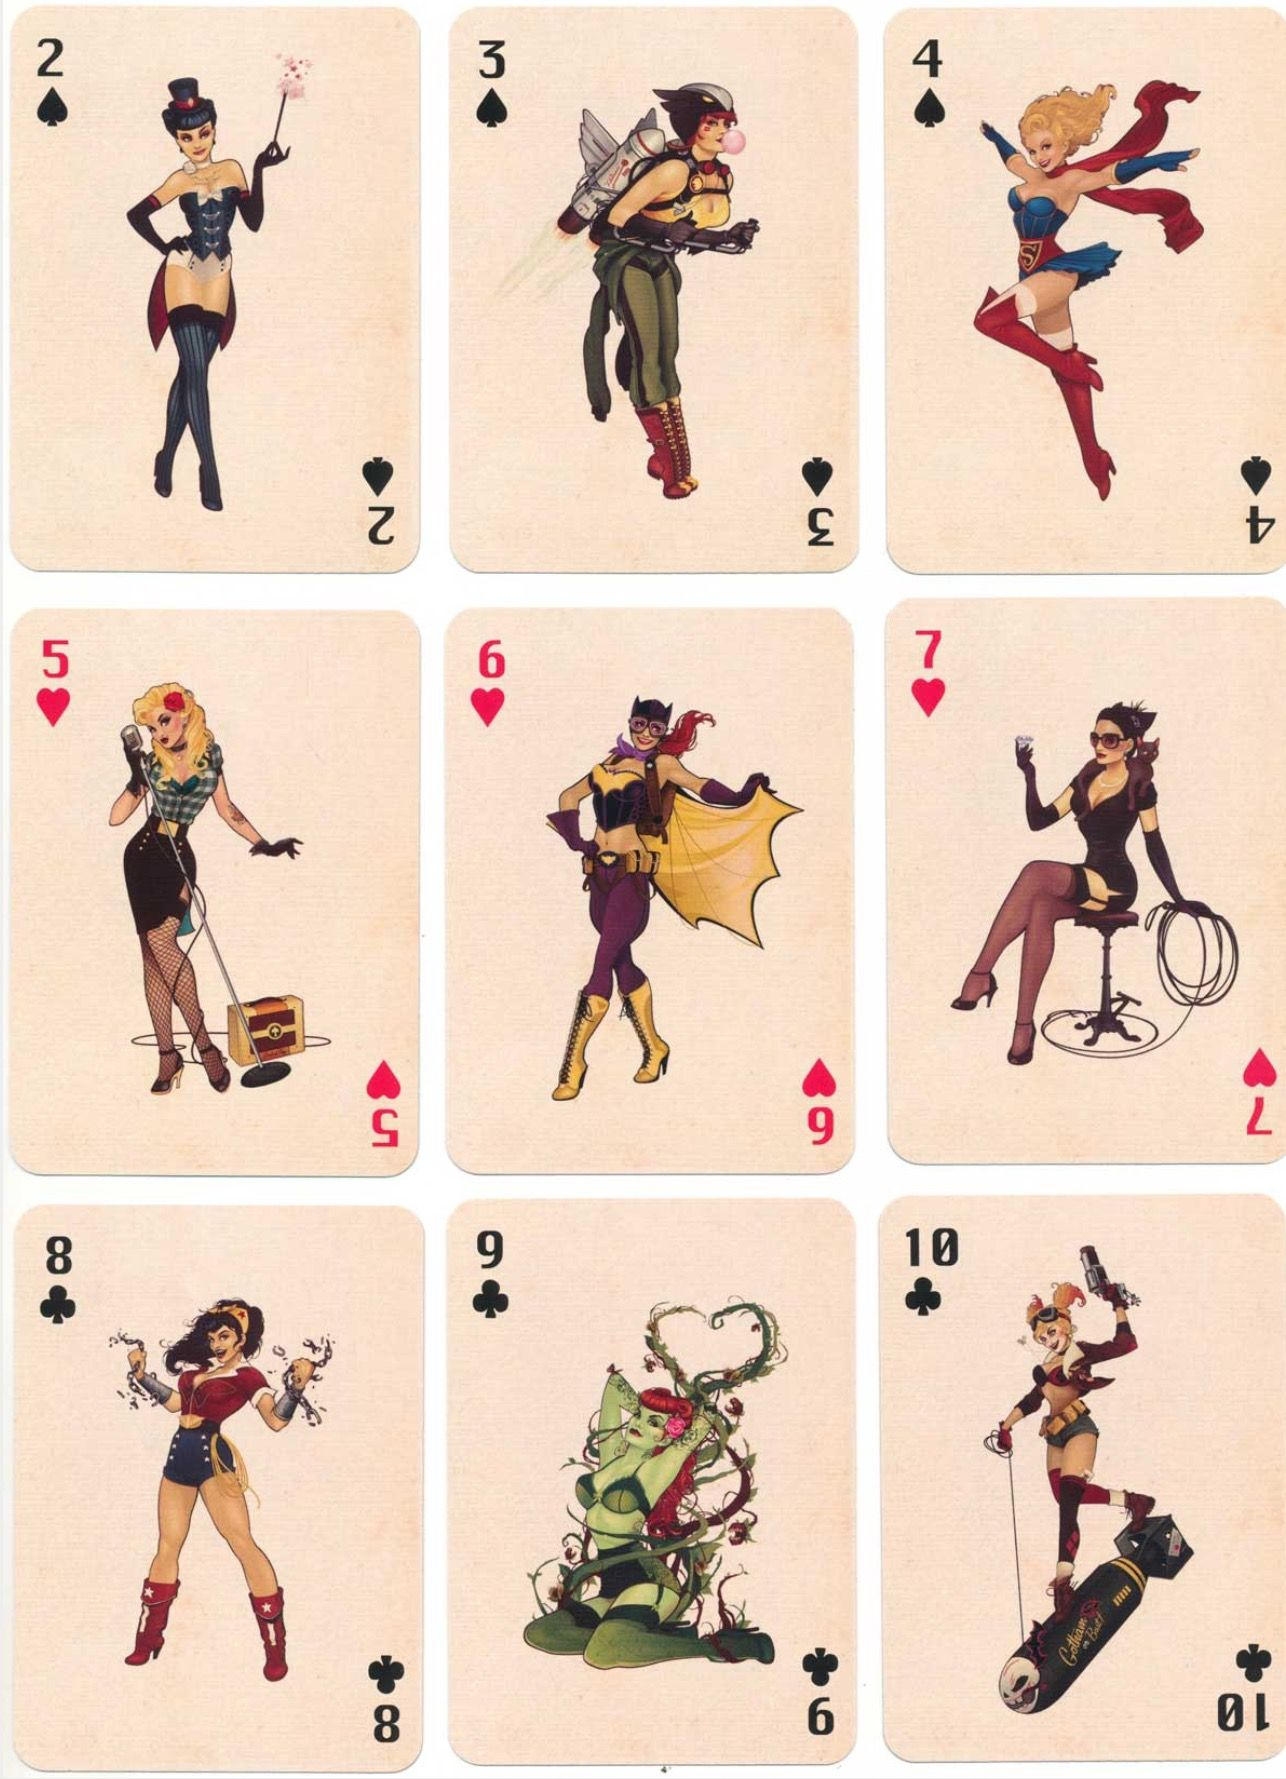 Dc bombshells playing cards art i love pinterest playing cards